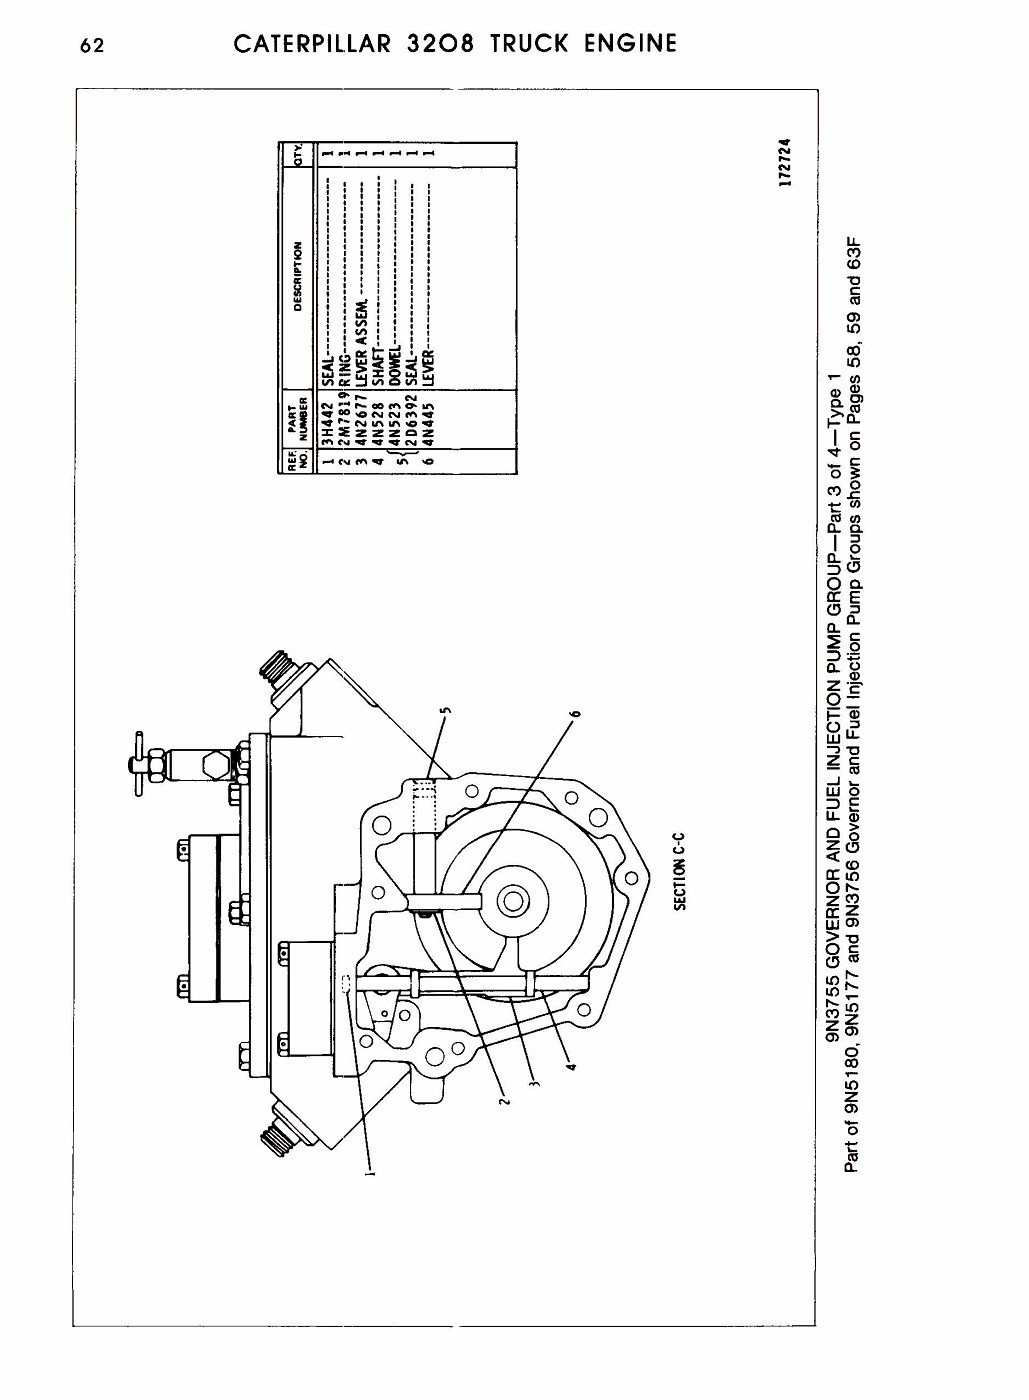 hight resolution of our site features lowest prices auto truck covers all topics new ring pistons applications truck workshop manual marine diesel was originally designed